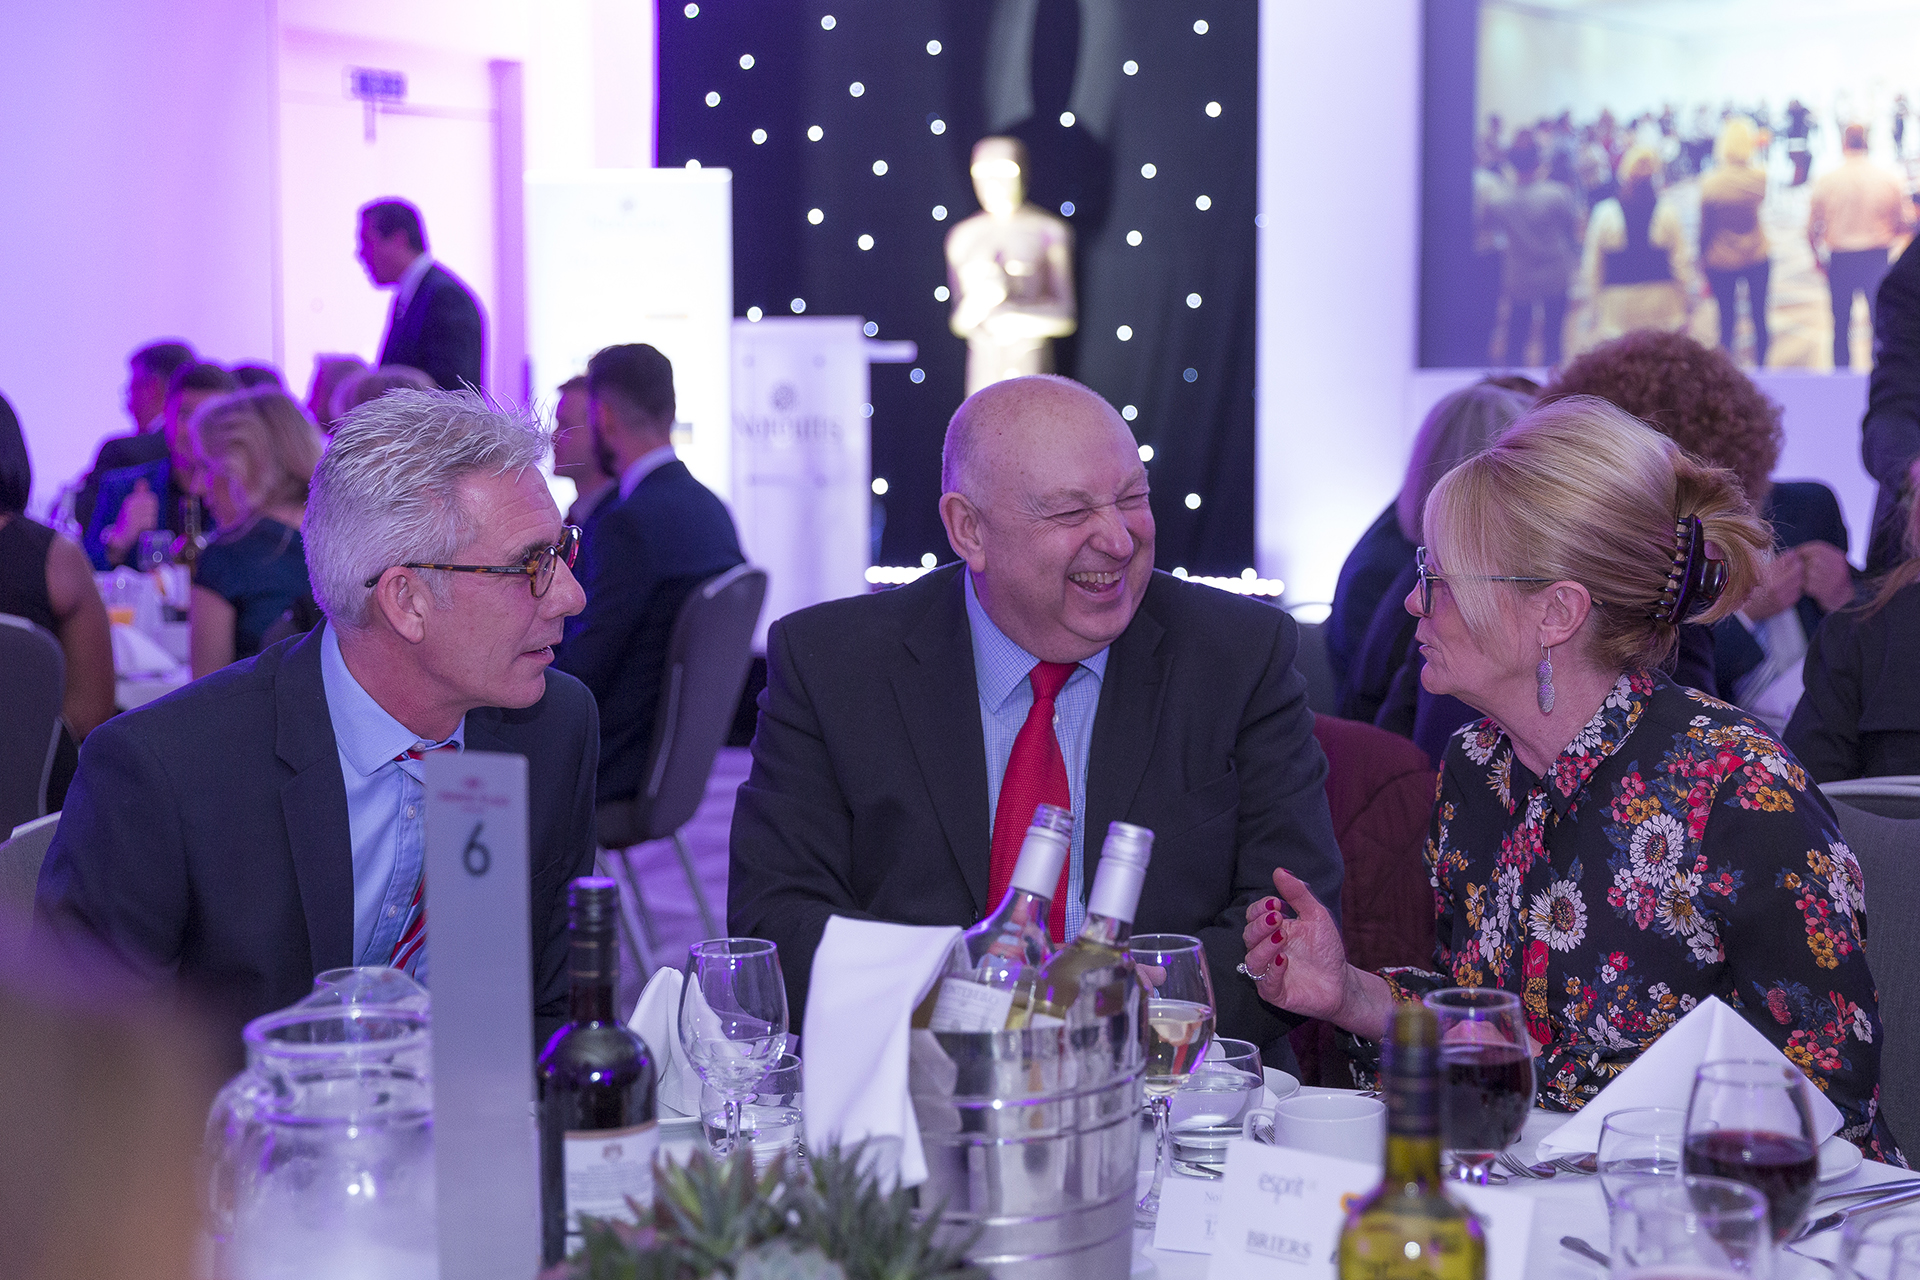 Notcutts event in Marlow : awards dinner